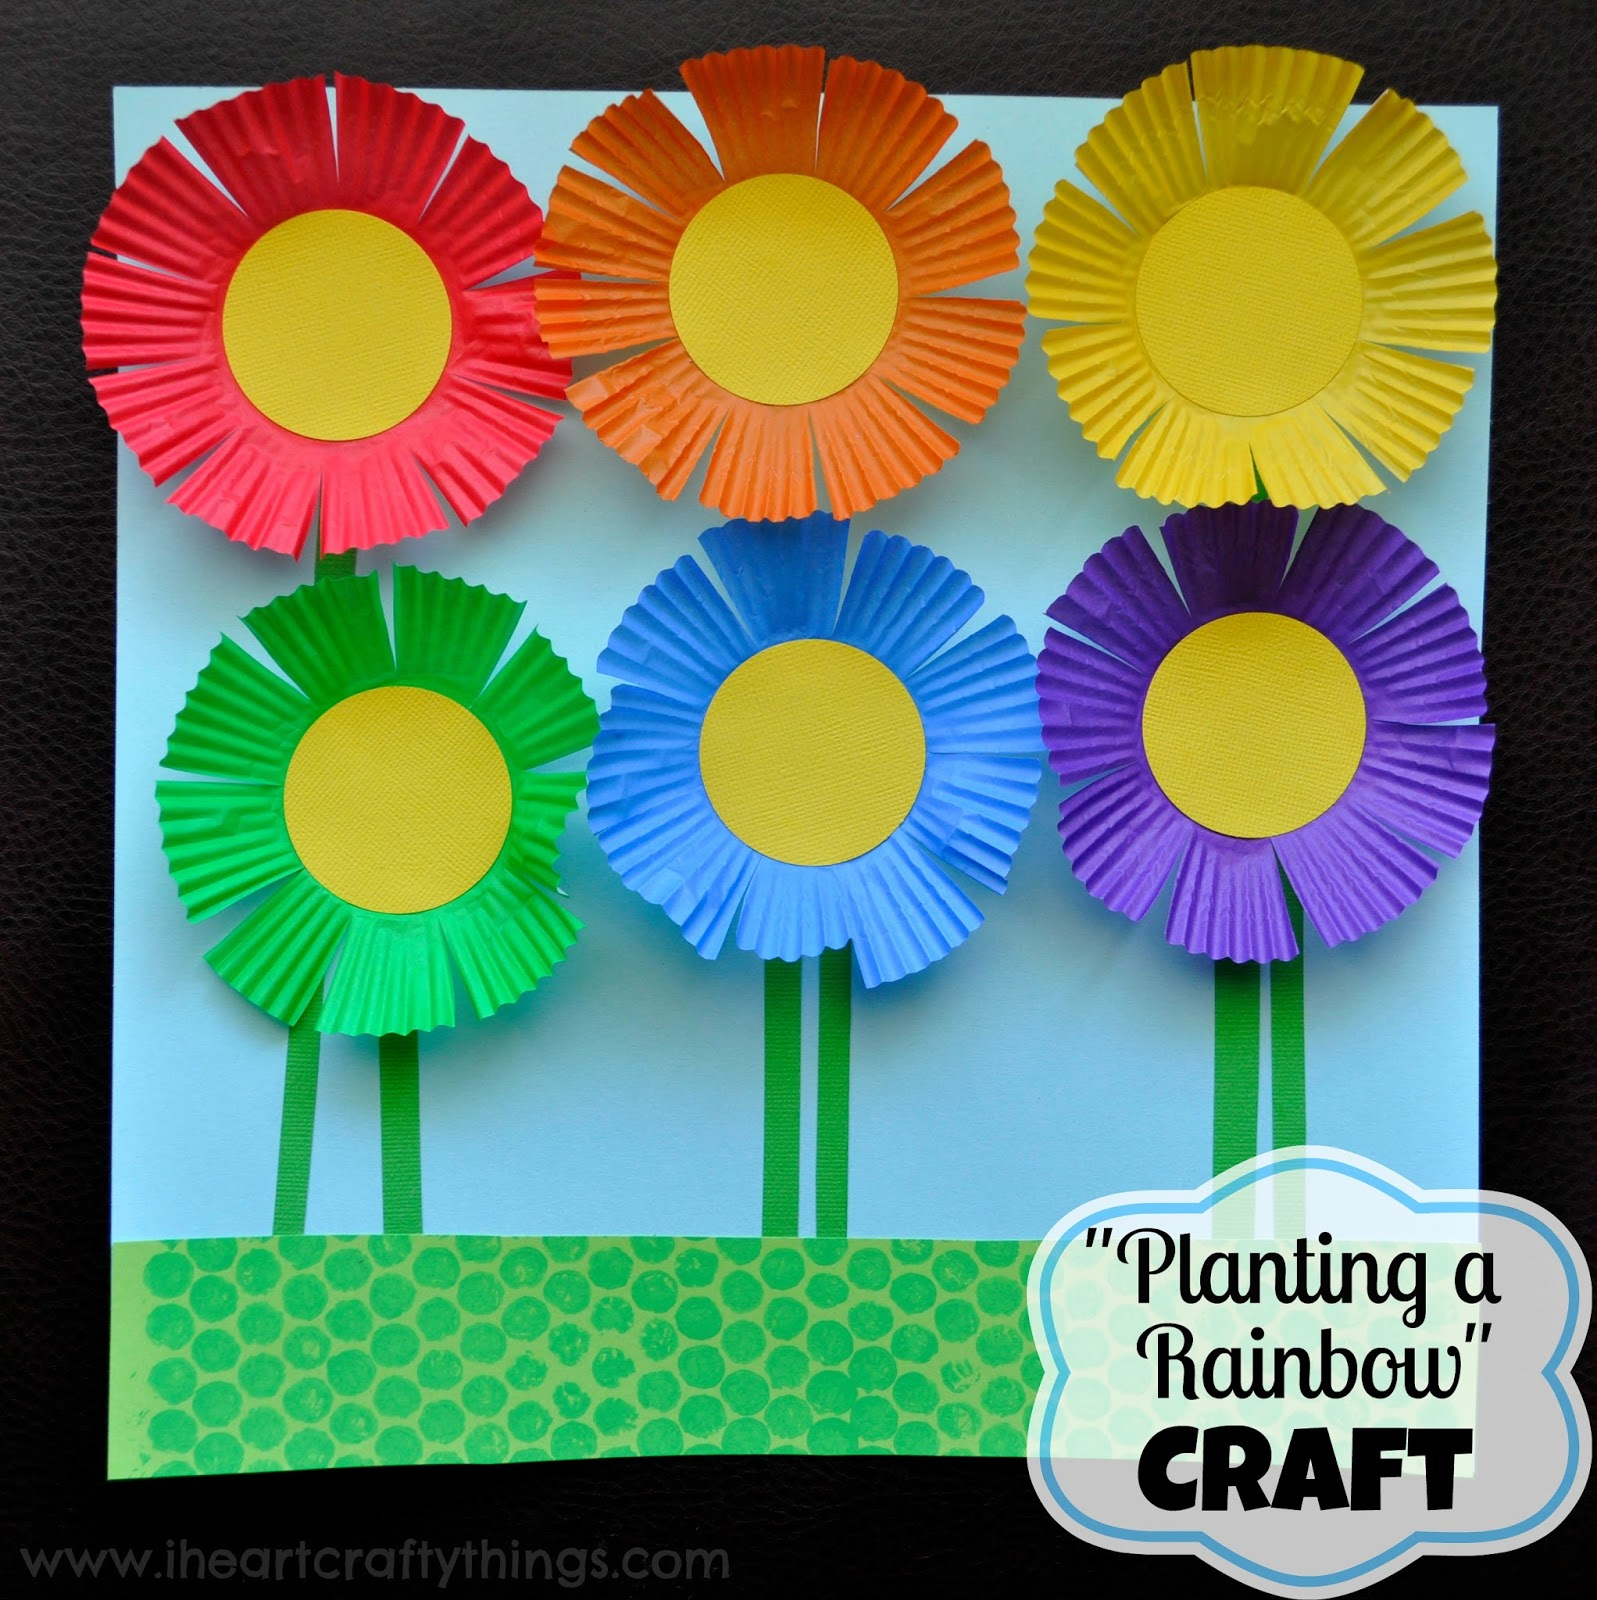 30 flower crafts for kids planting a rainbow flower craft by i heart crafty things mightylinksfo Choice Image